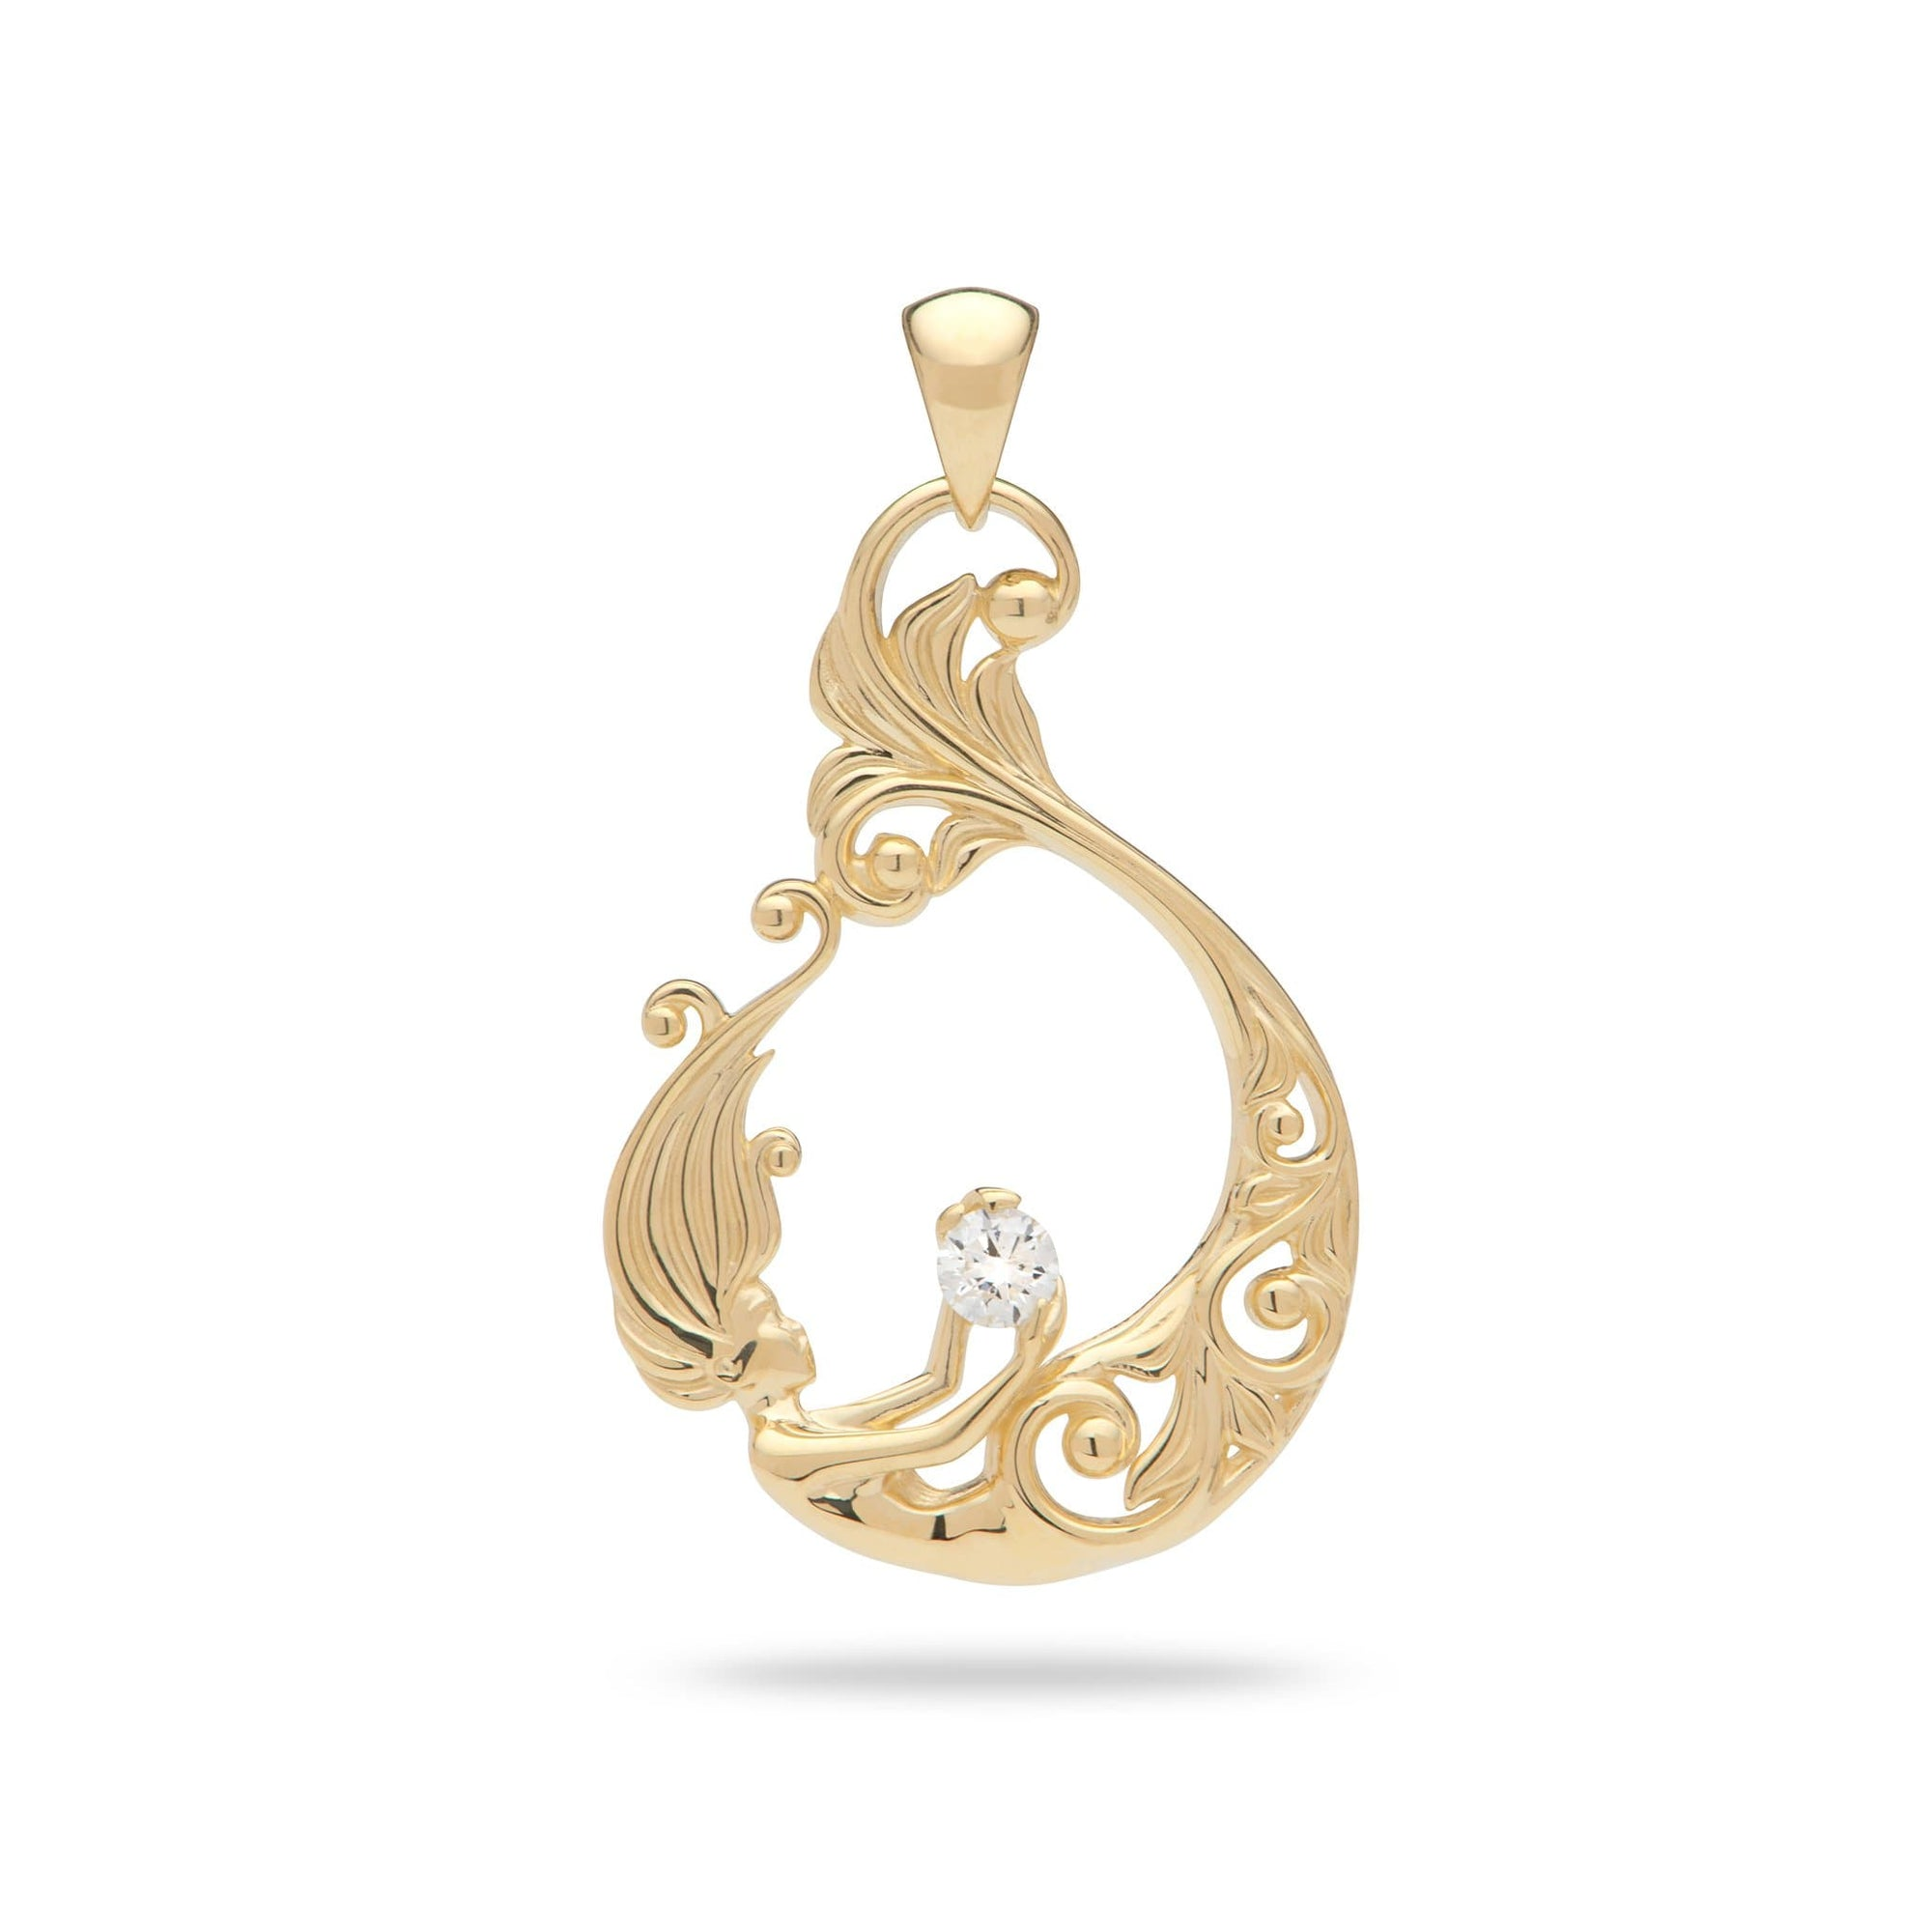 Living Heirloom Mermaid Pendant with Diamond in 14K Yellow Gold - Maui Divers Jewelry